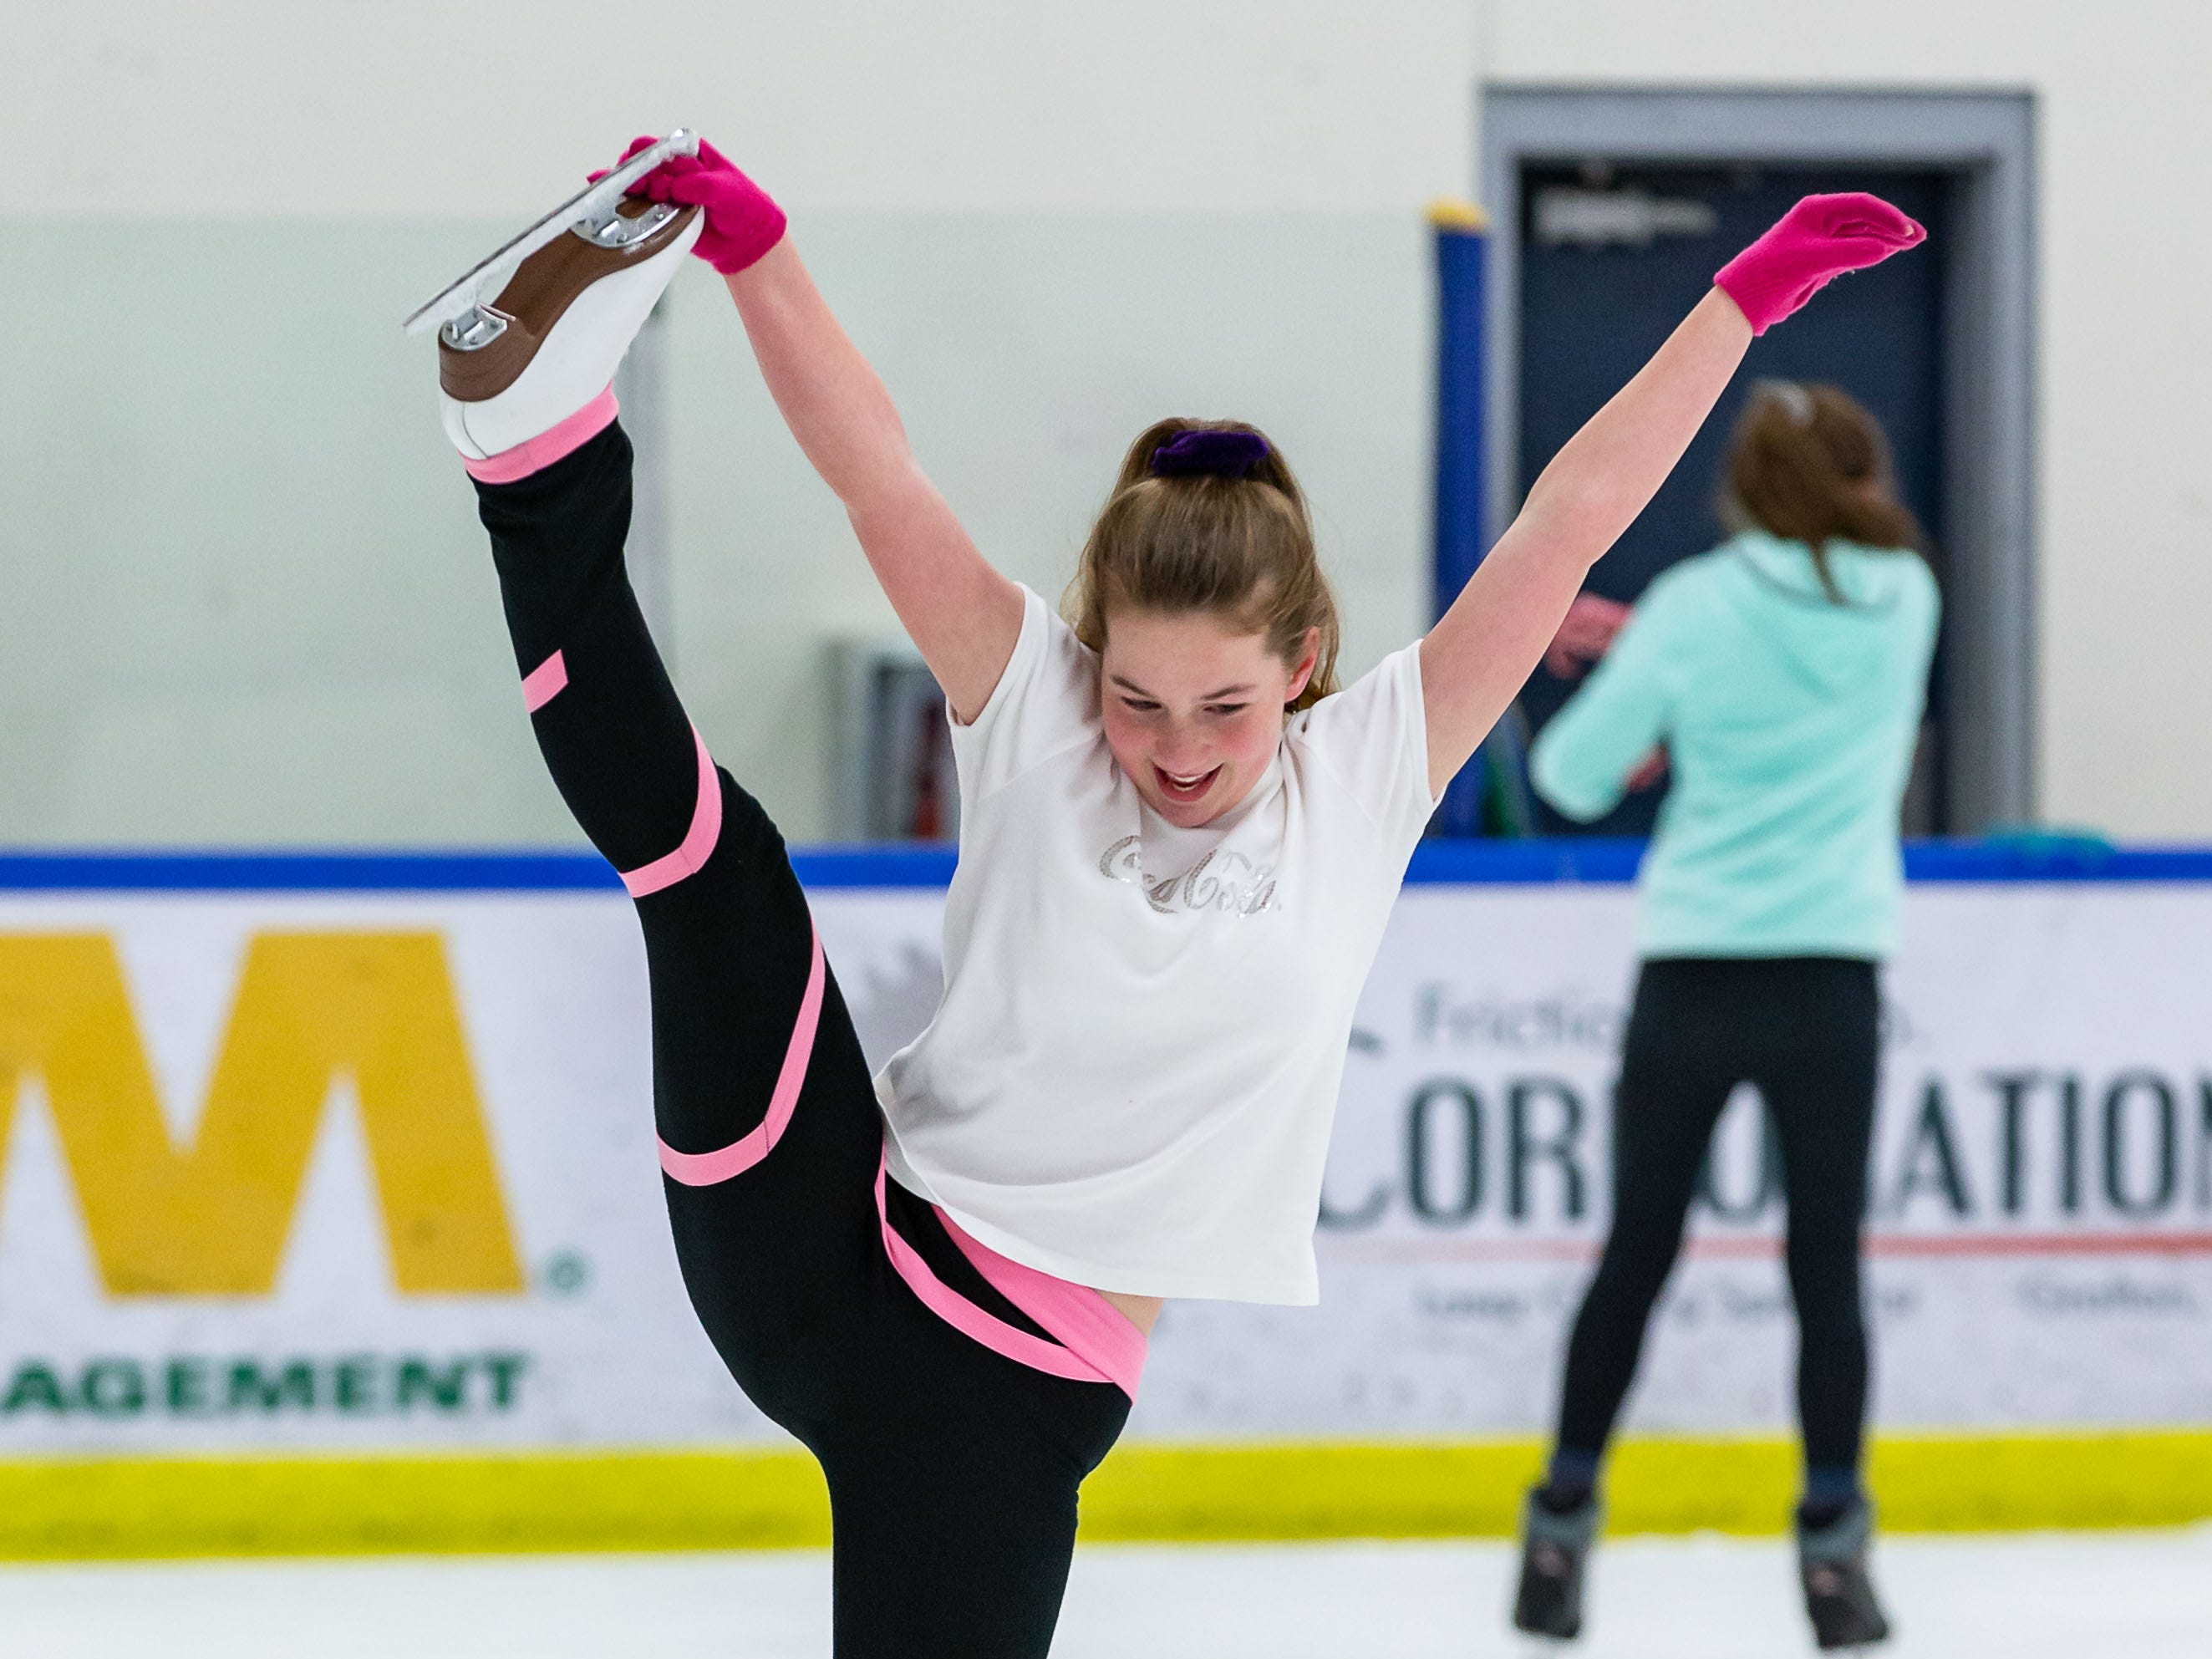 Figure skater Bianca Nichols, 14, of Germantown performs a Y-spiral while practicing at the Ozaukee Ice Center in Mequon during public skating hours on Saturday, Dec. 22, 2018. The center offers public skating between 12:15 p.m. and 2:15 p.m. on Saturdays and Sundays.